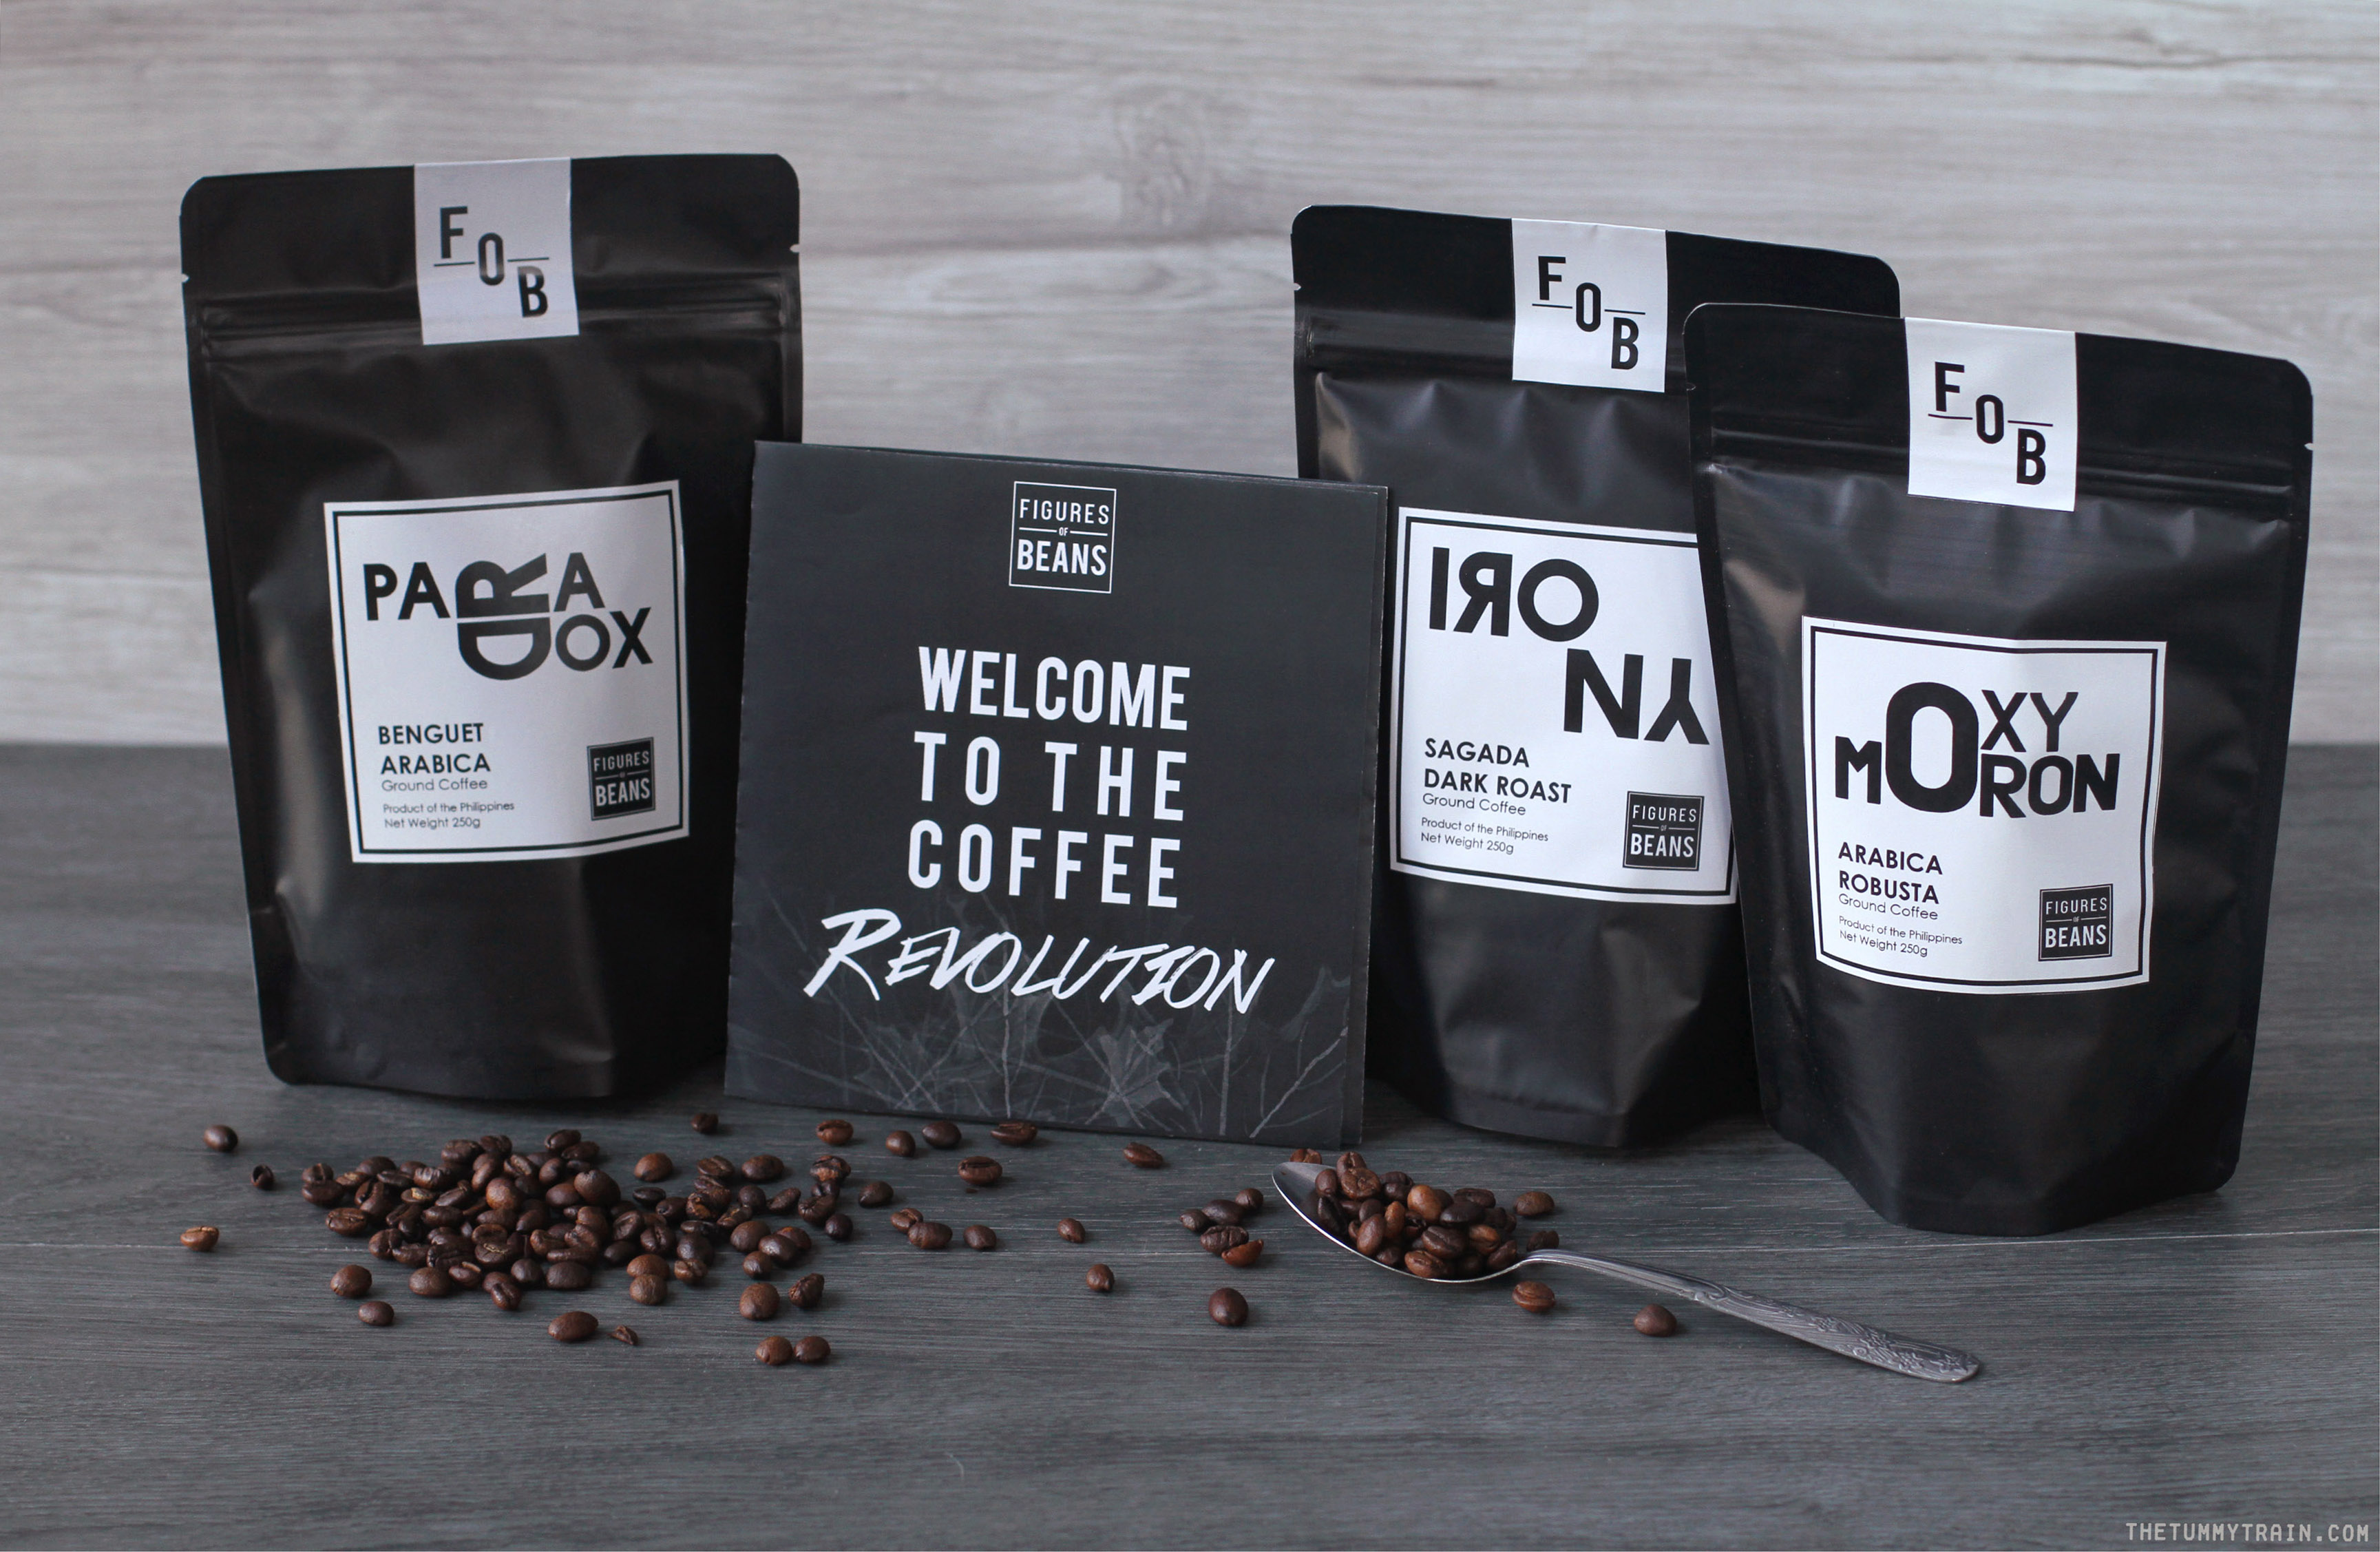 Figures of Beans COVER - Figures of Beans brings coffee from Cordillera straight to your door